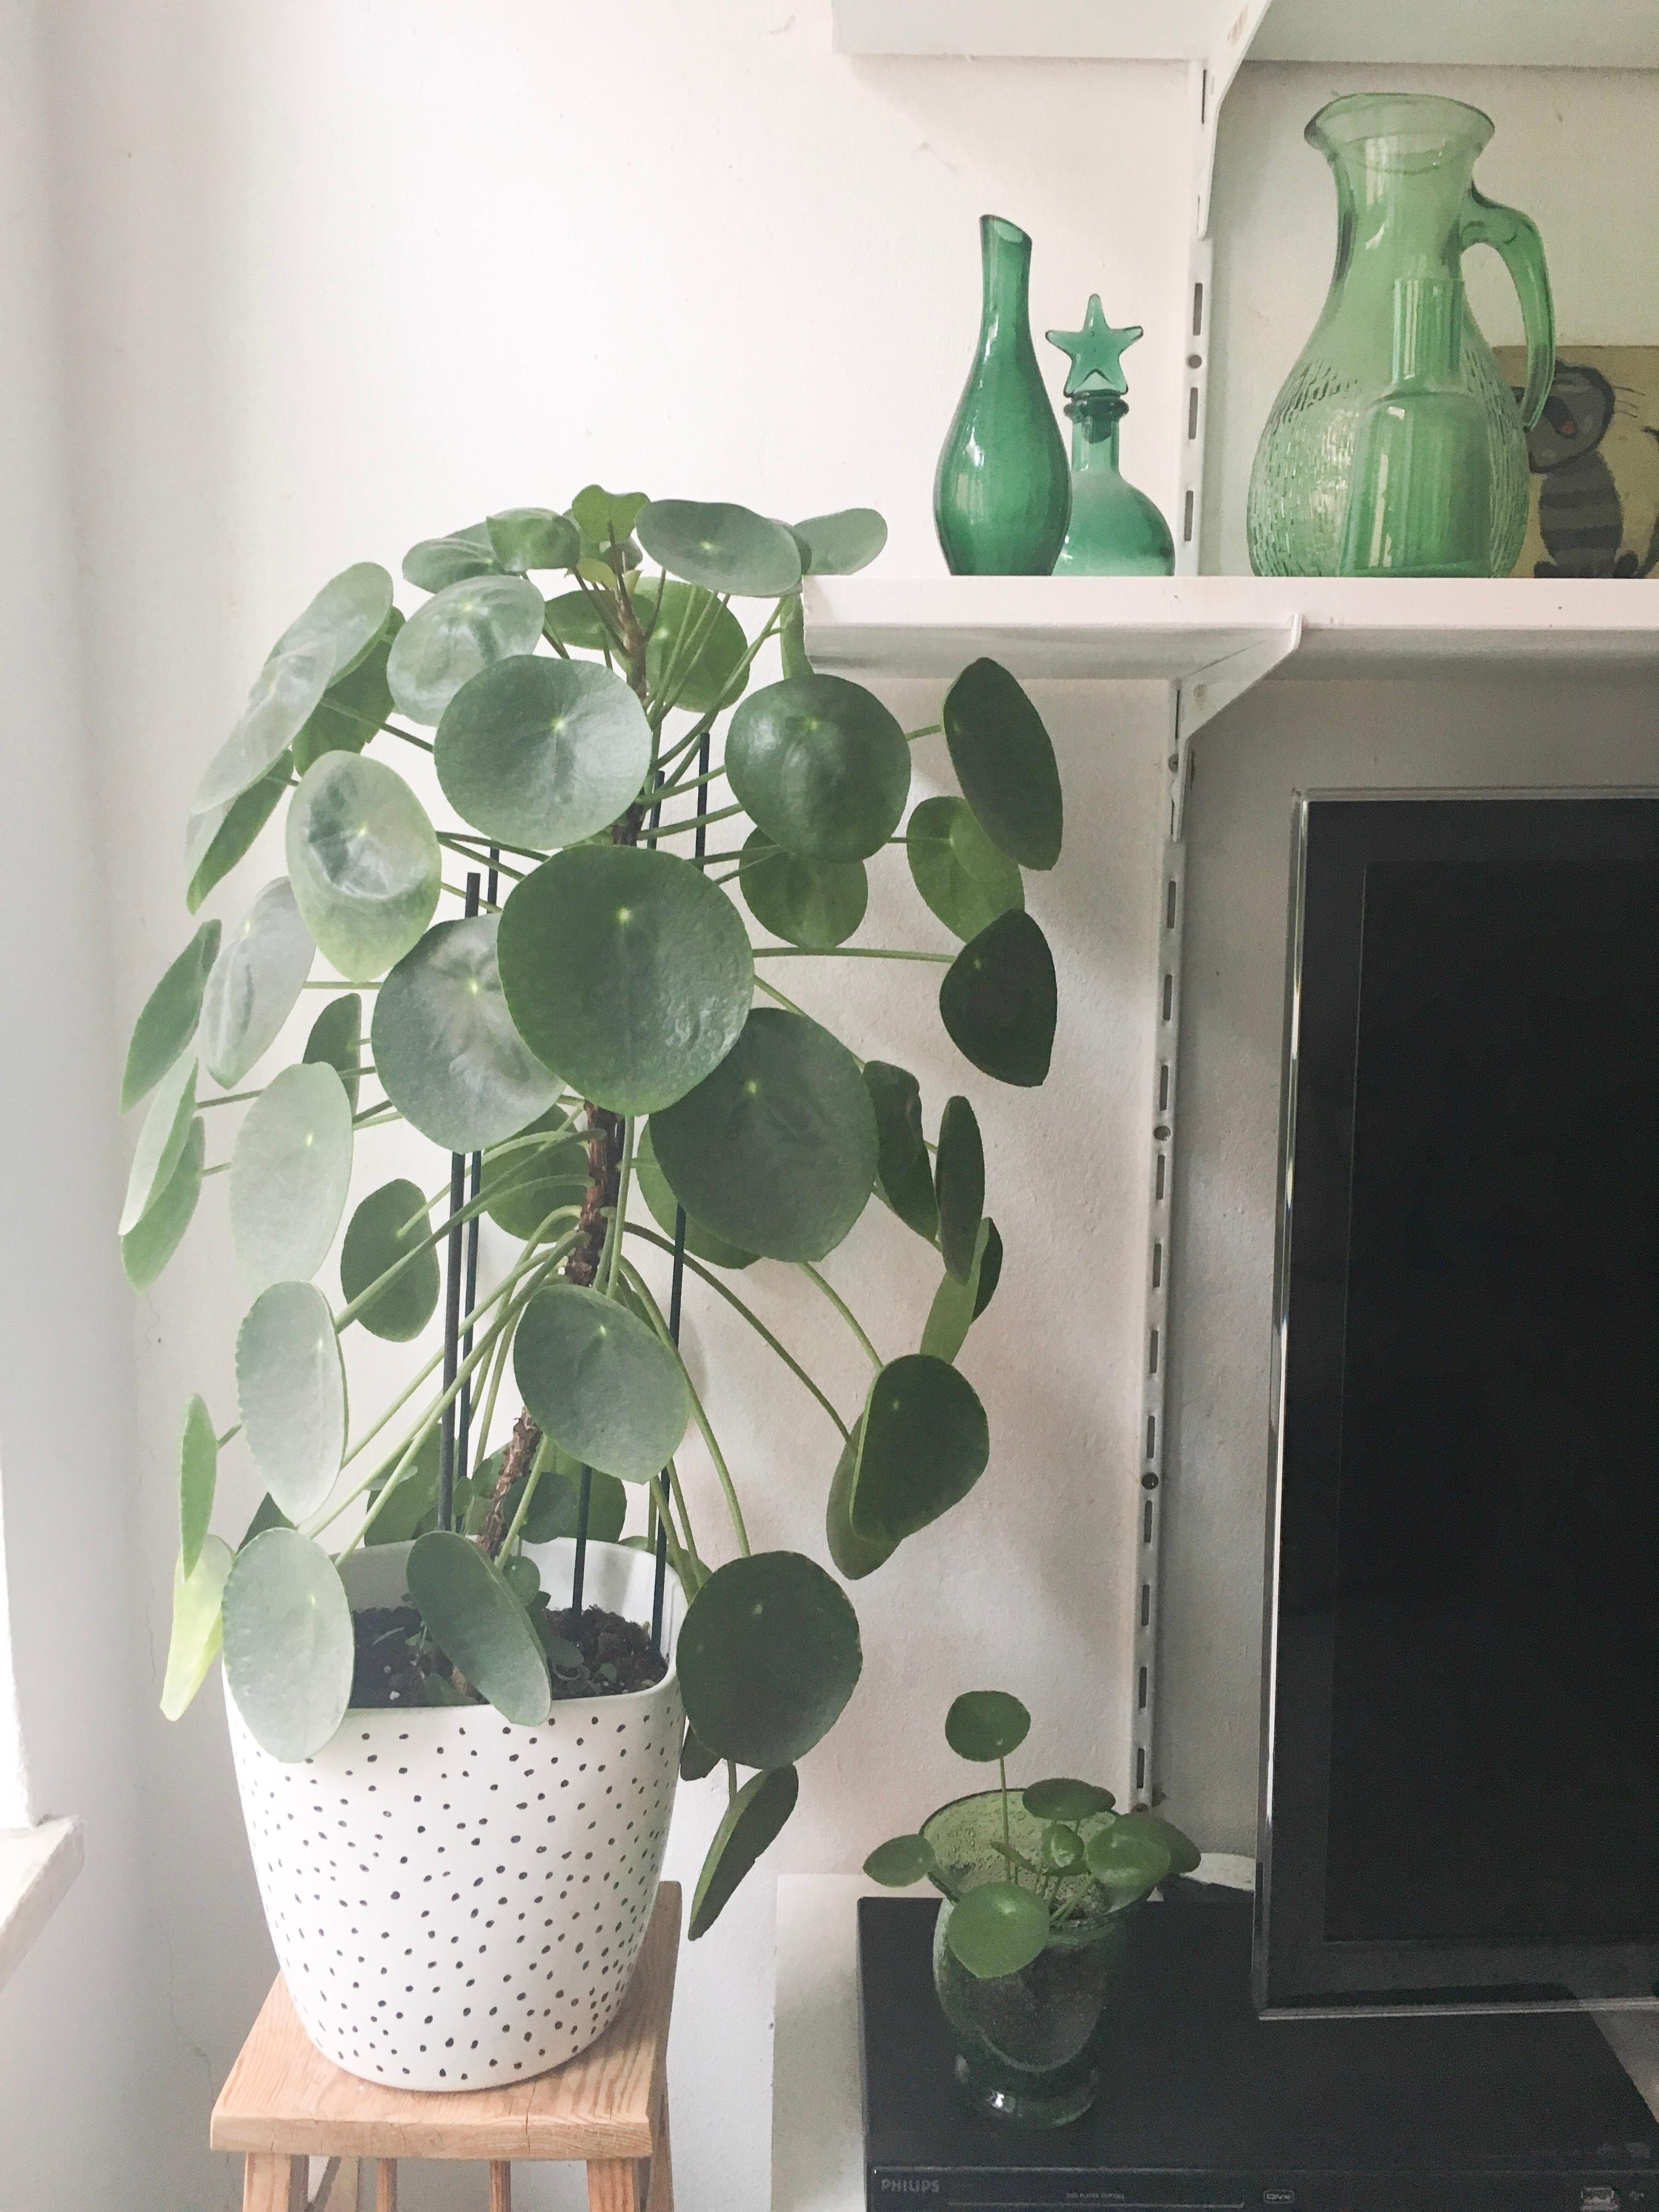 #pilea #urbanjungle #green #pflanzen